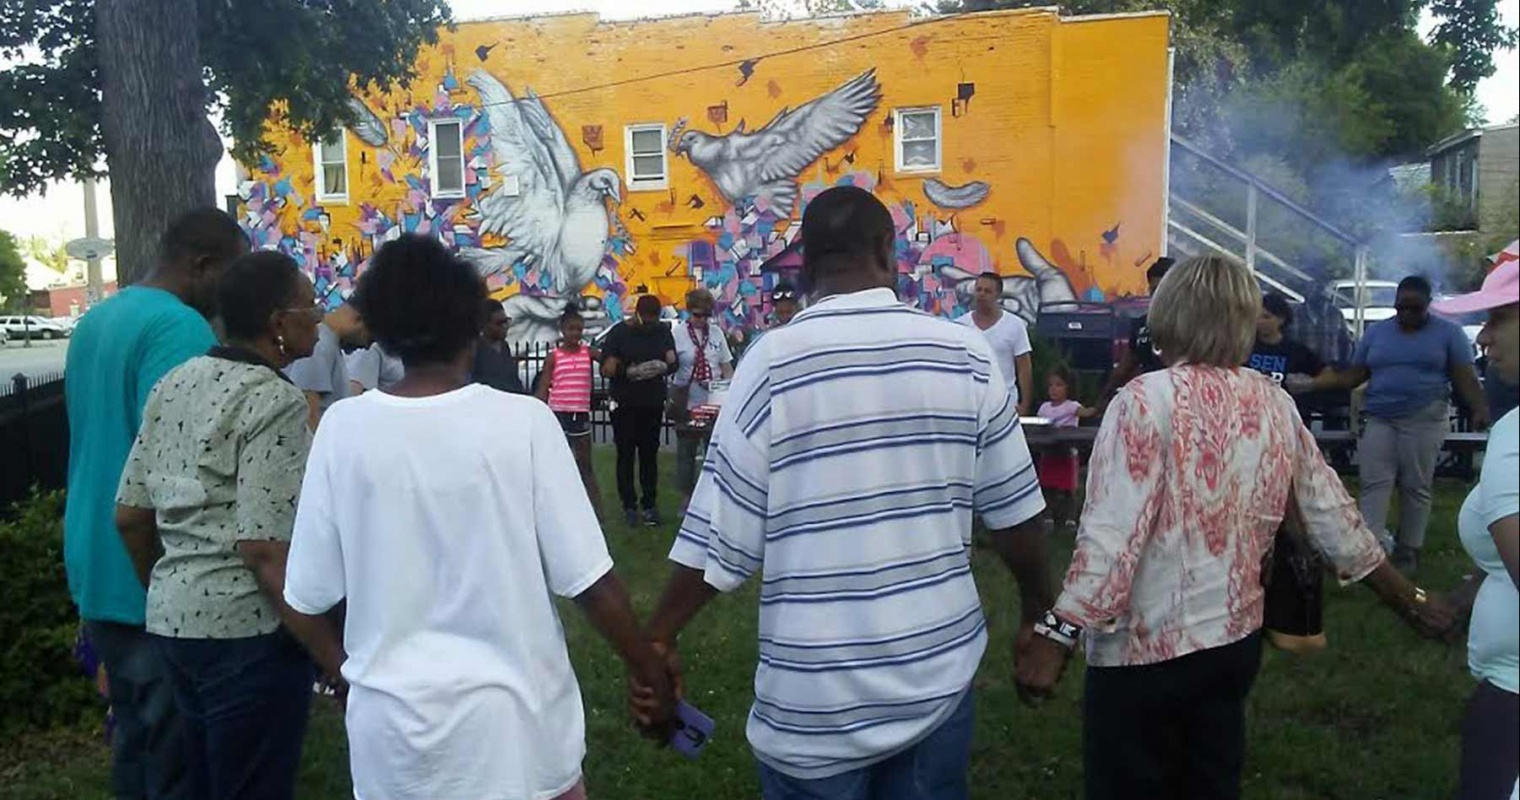 The people uniting in prayer in Highland Park